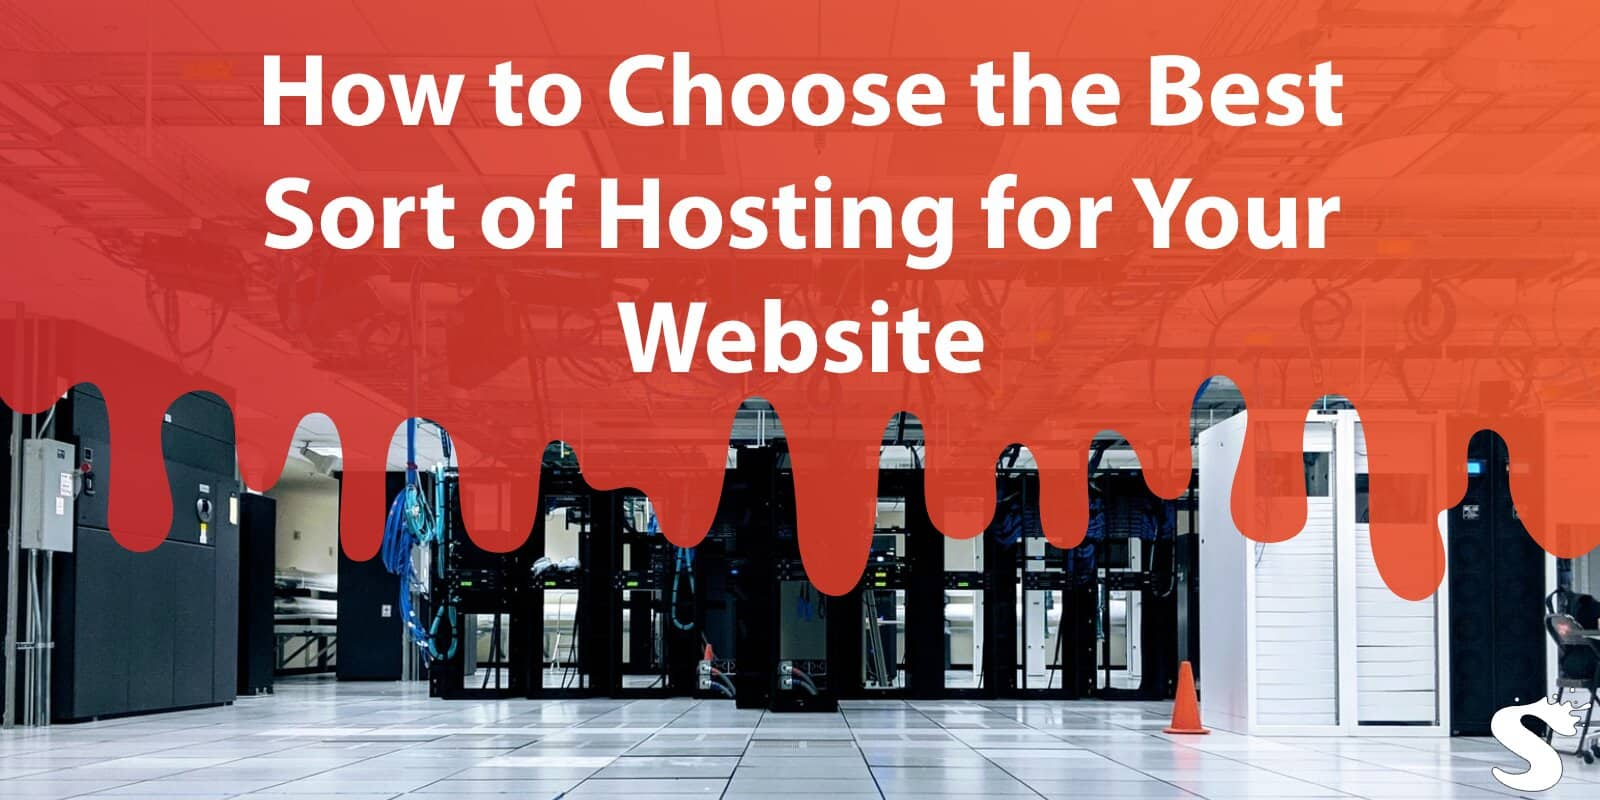 How to Choose the Best Sort of Hosting for Your Website